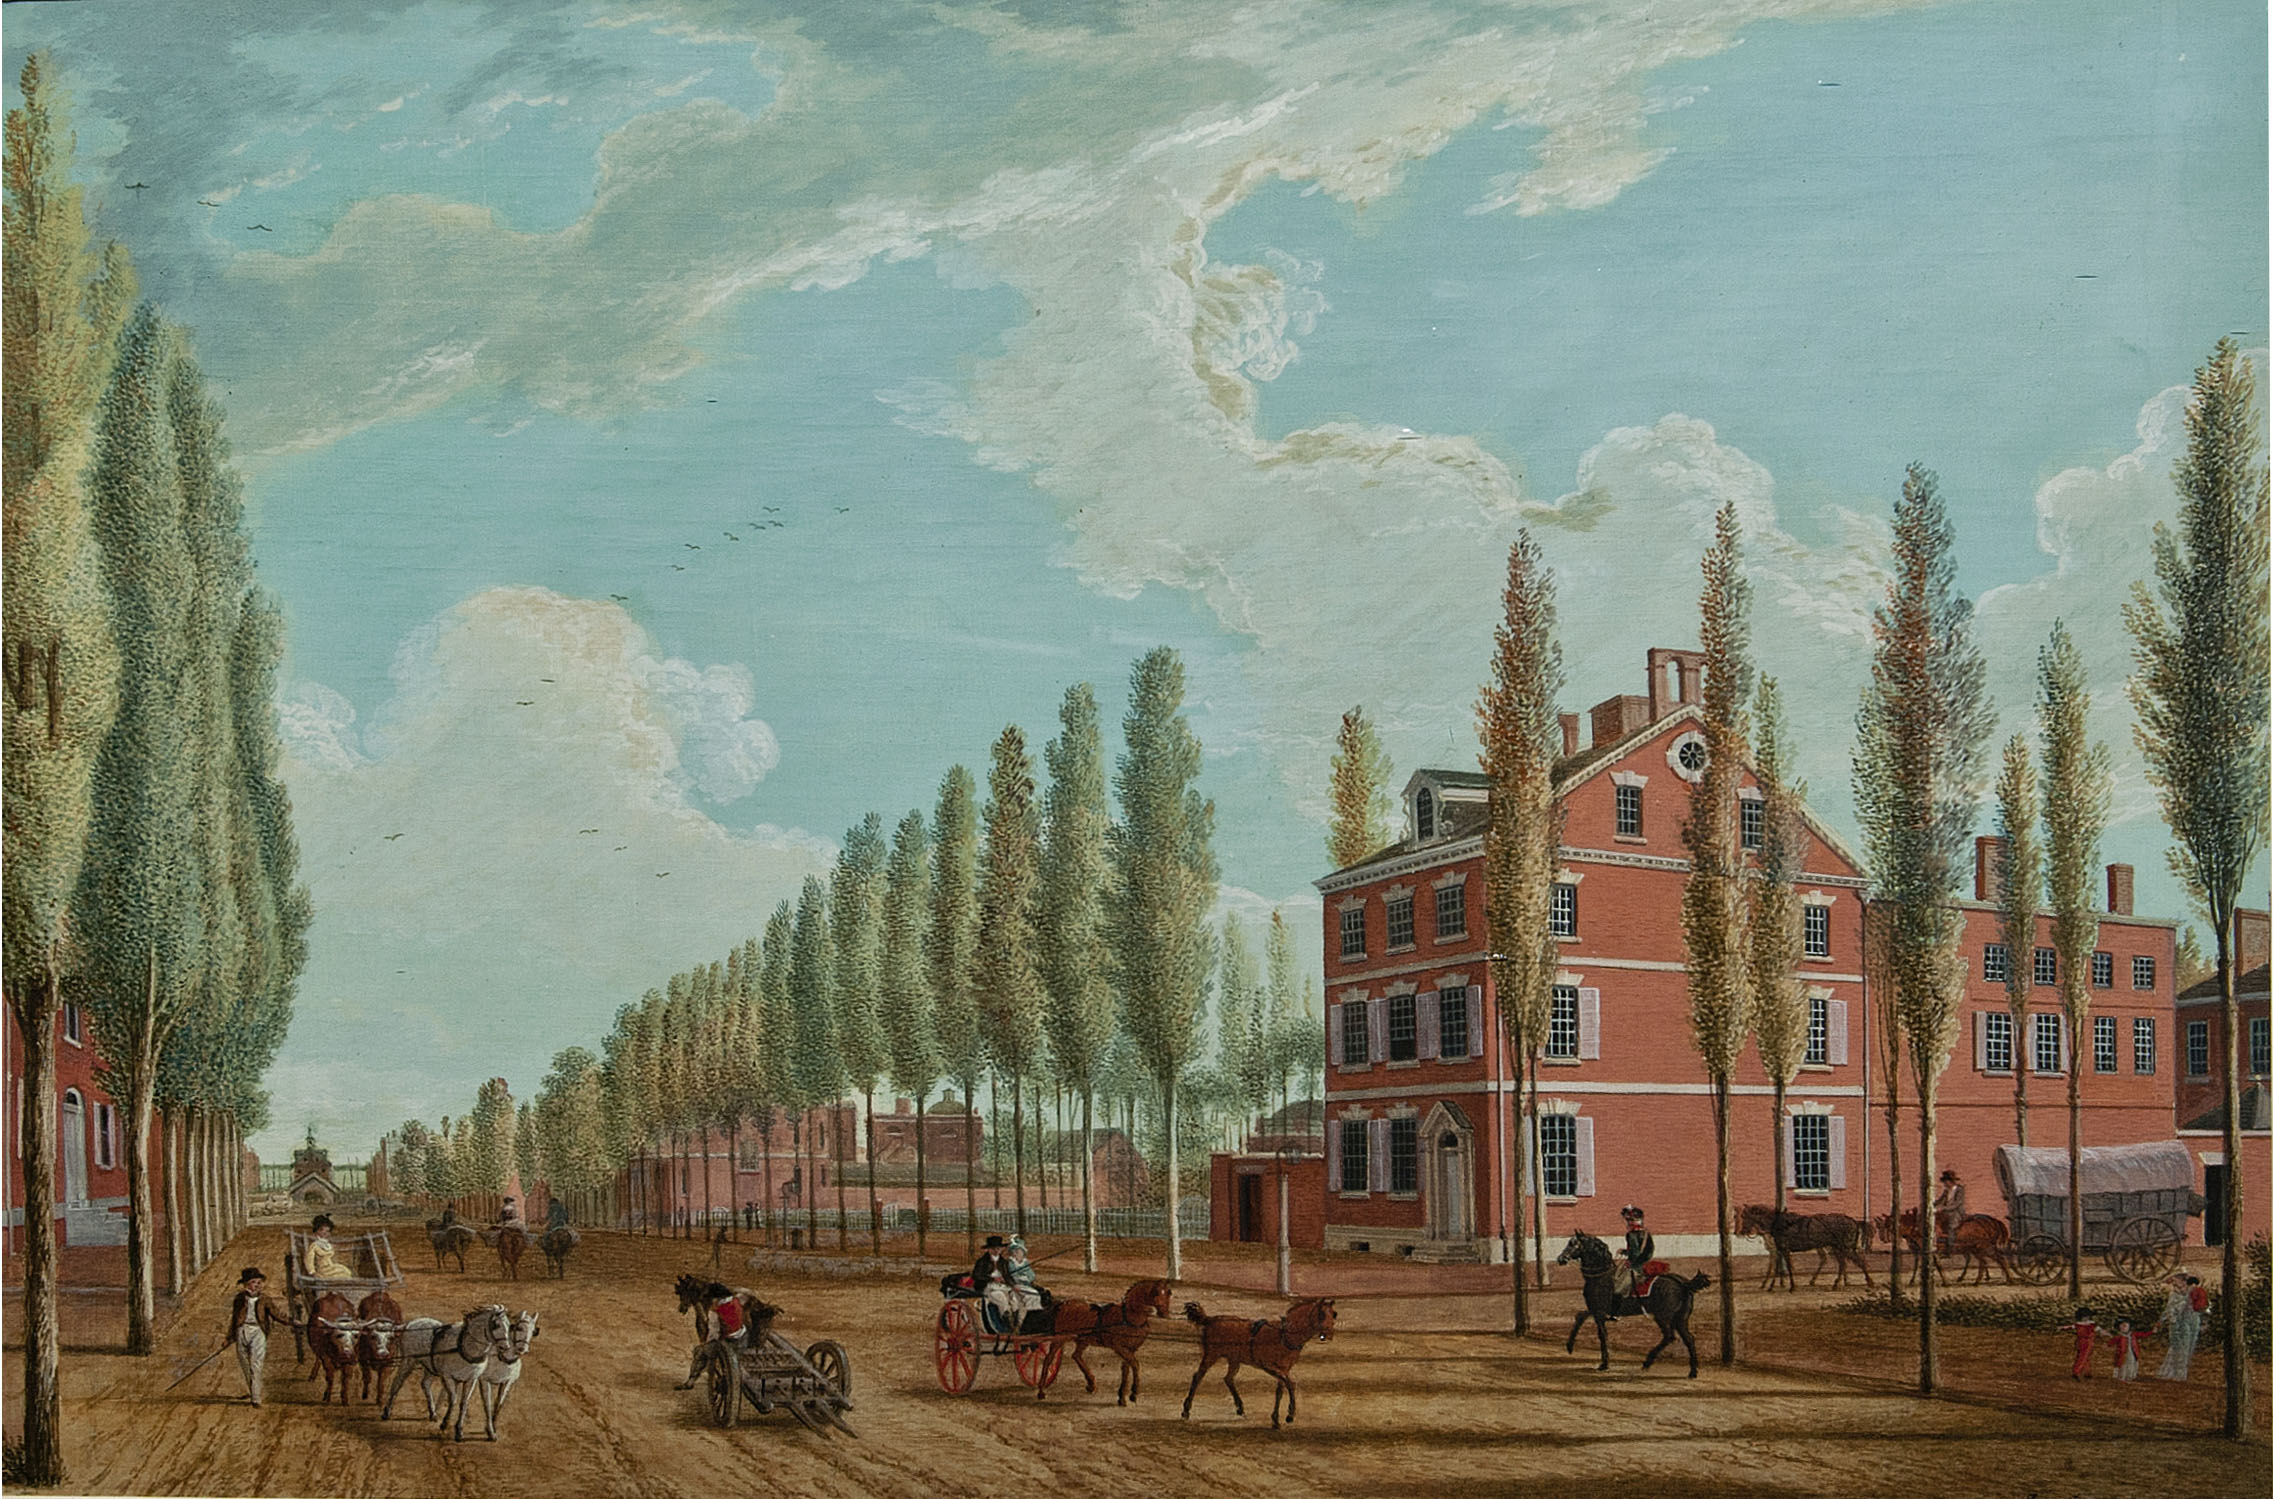 Painting of Dunlap House by Jon James Barralet, 1807